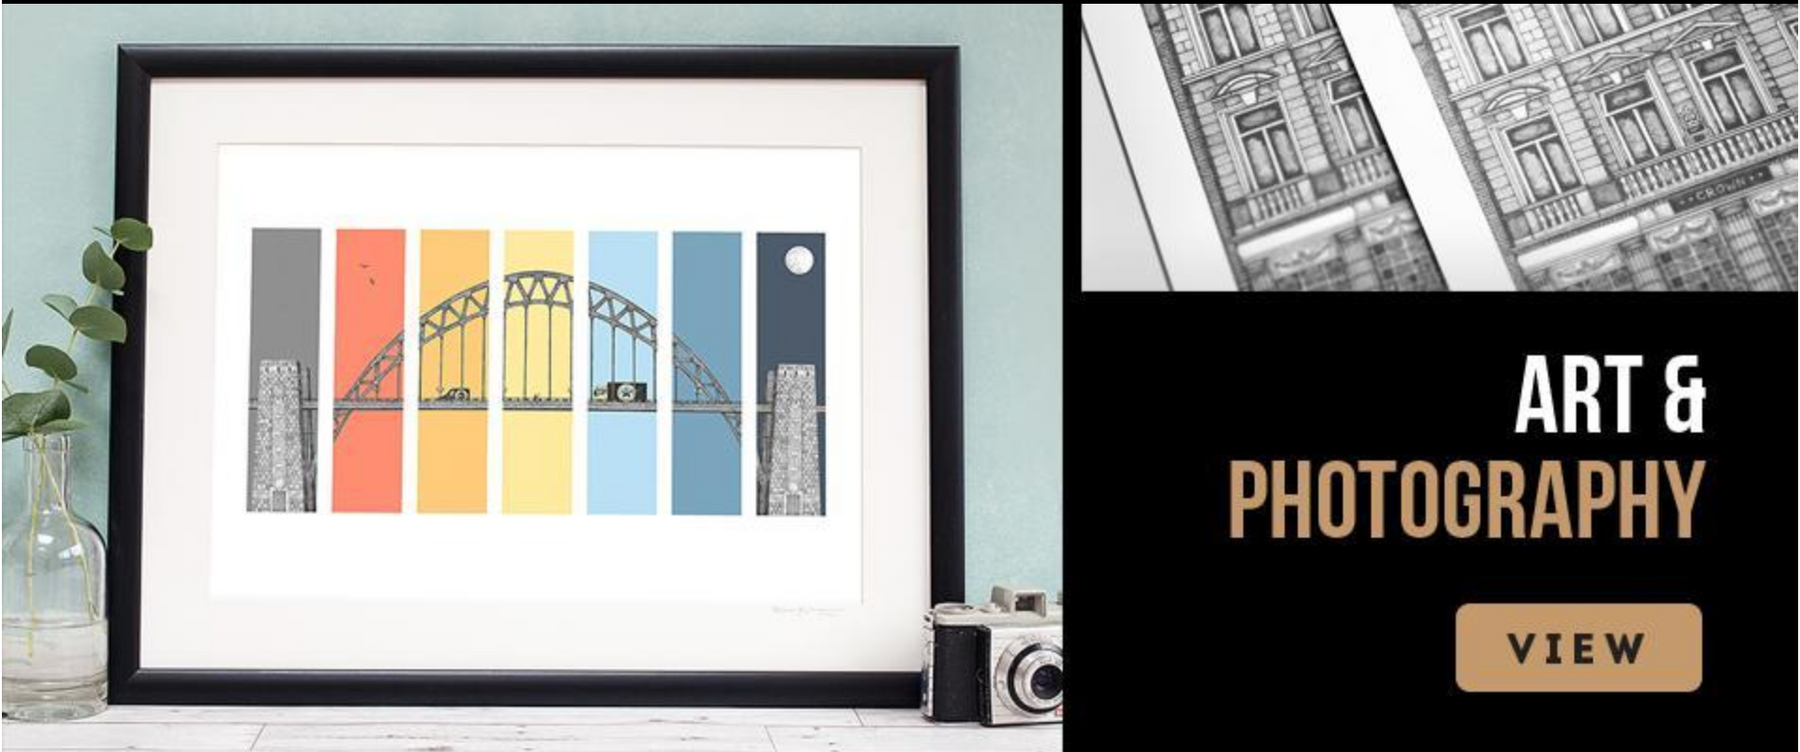 newcastle artwork and photography, unique drawing of north east landmarks. Black and white framed prints